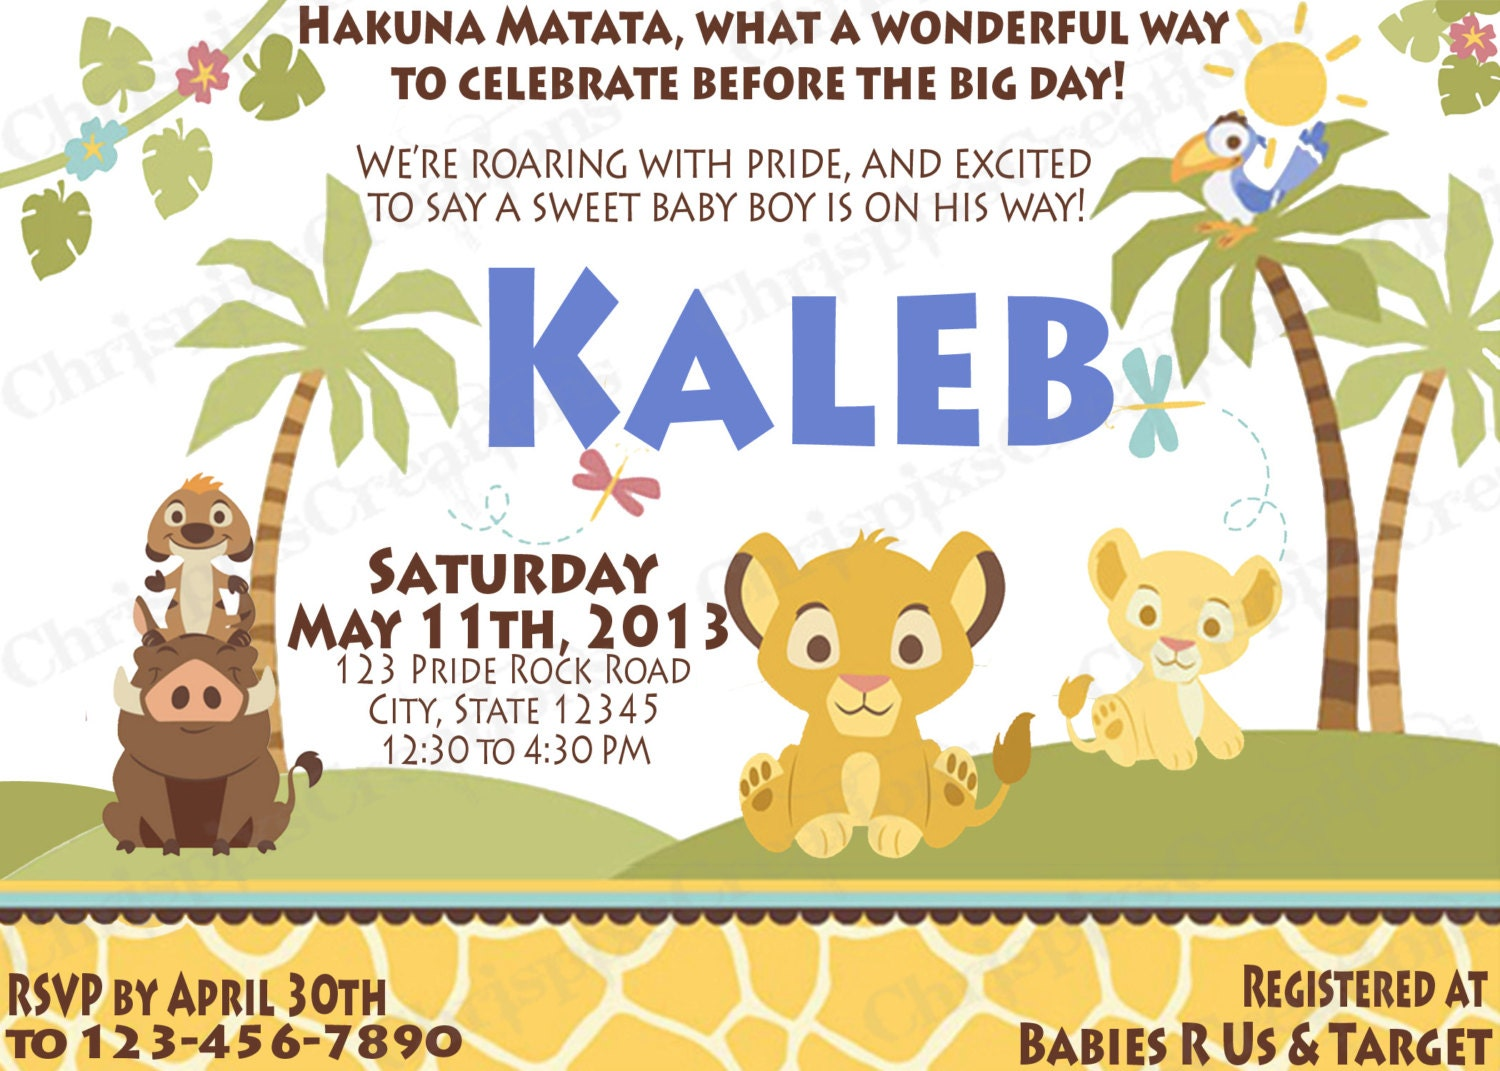 King simba baby shower invitations lion king simba baby shower invitations filmwisefo Gallery